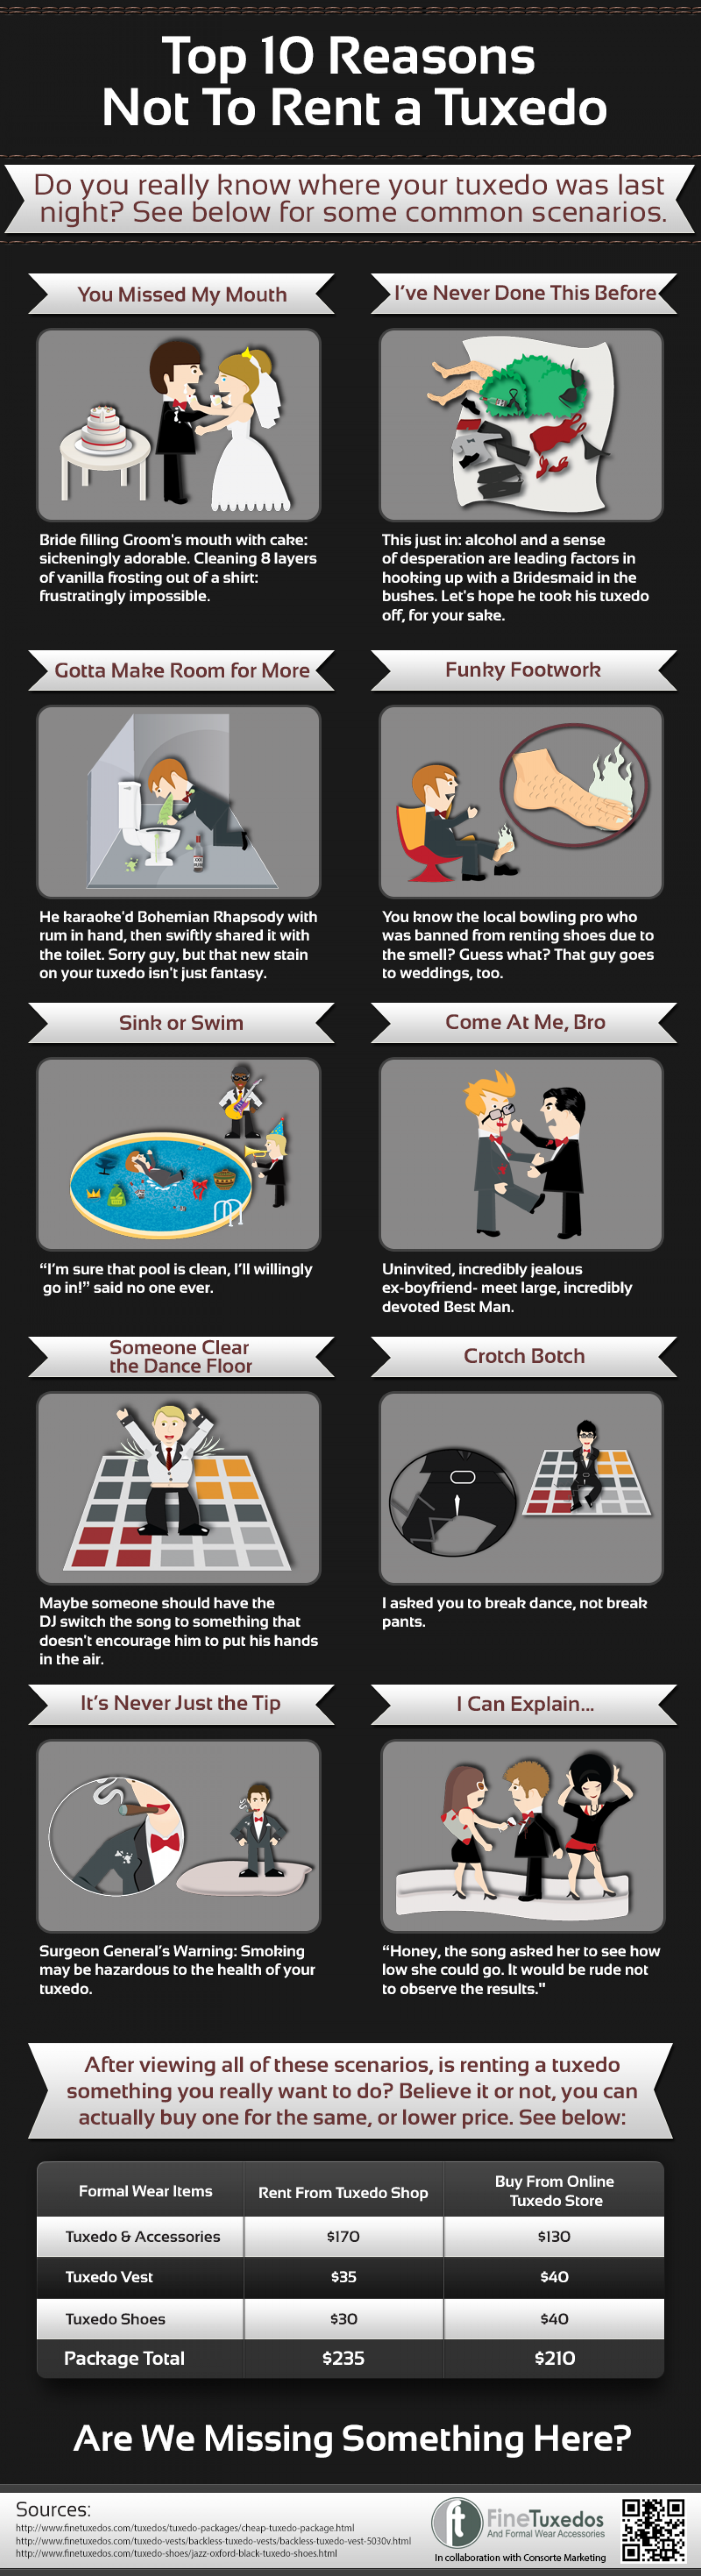 Top 10 Reasons Not To Rent a Tuxedo Infographic